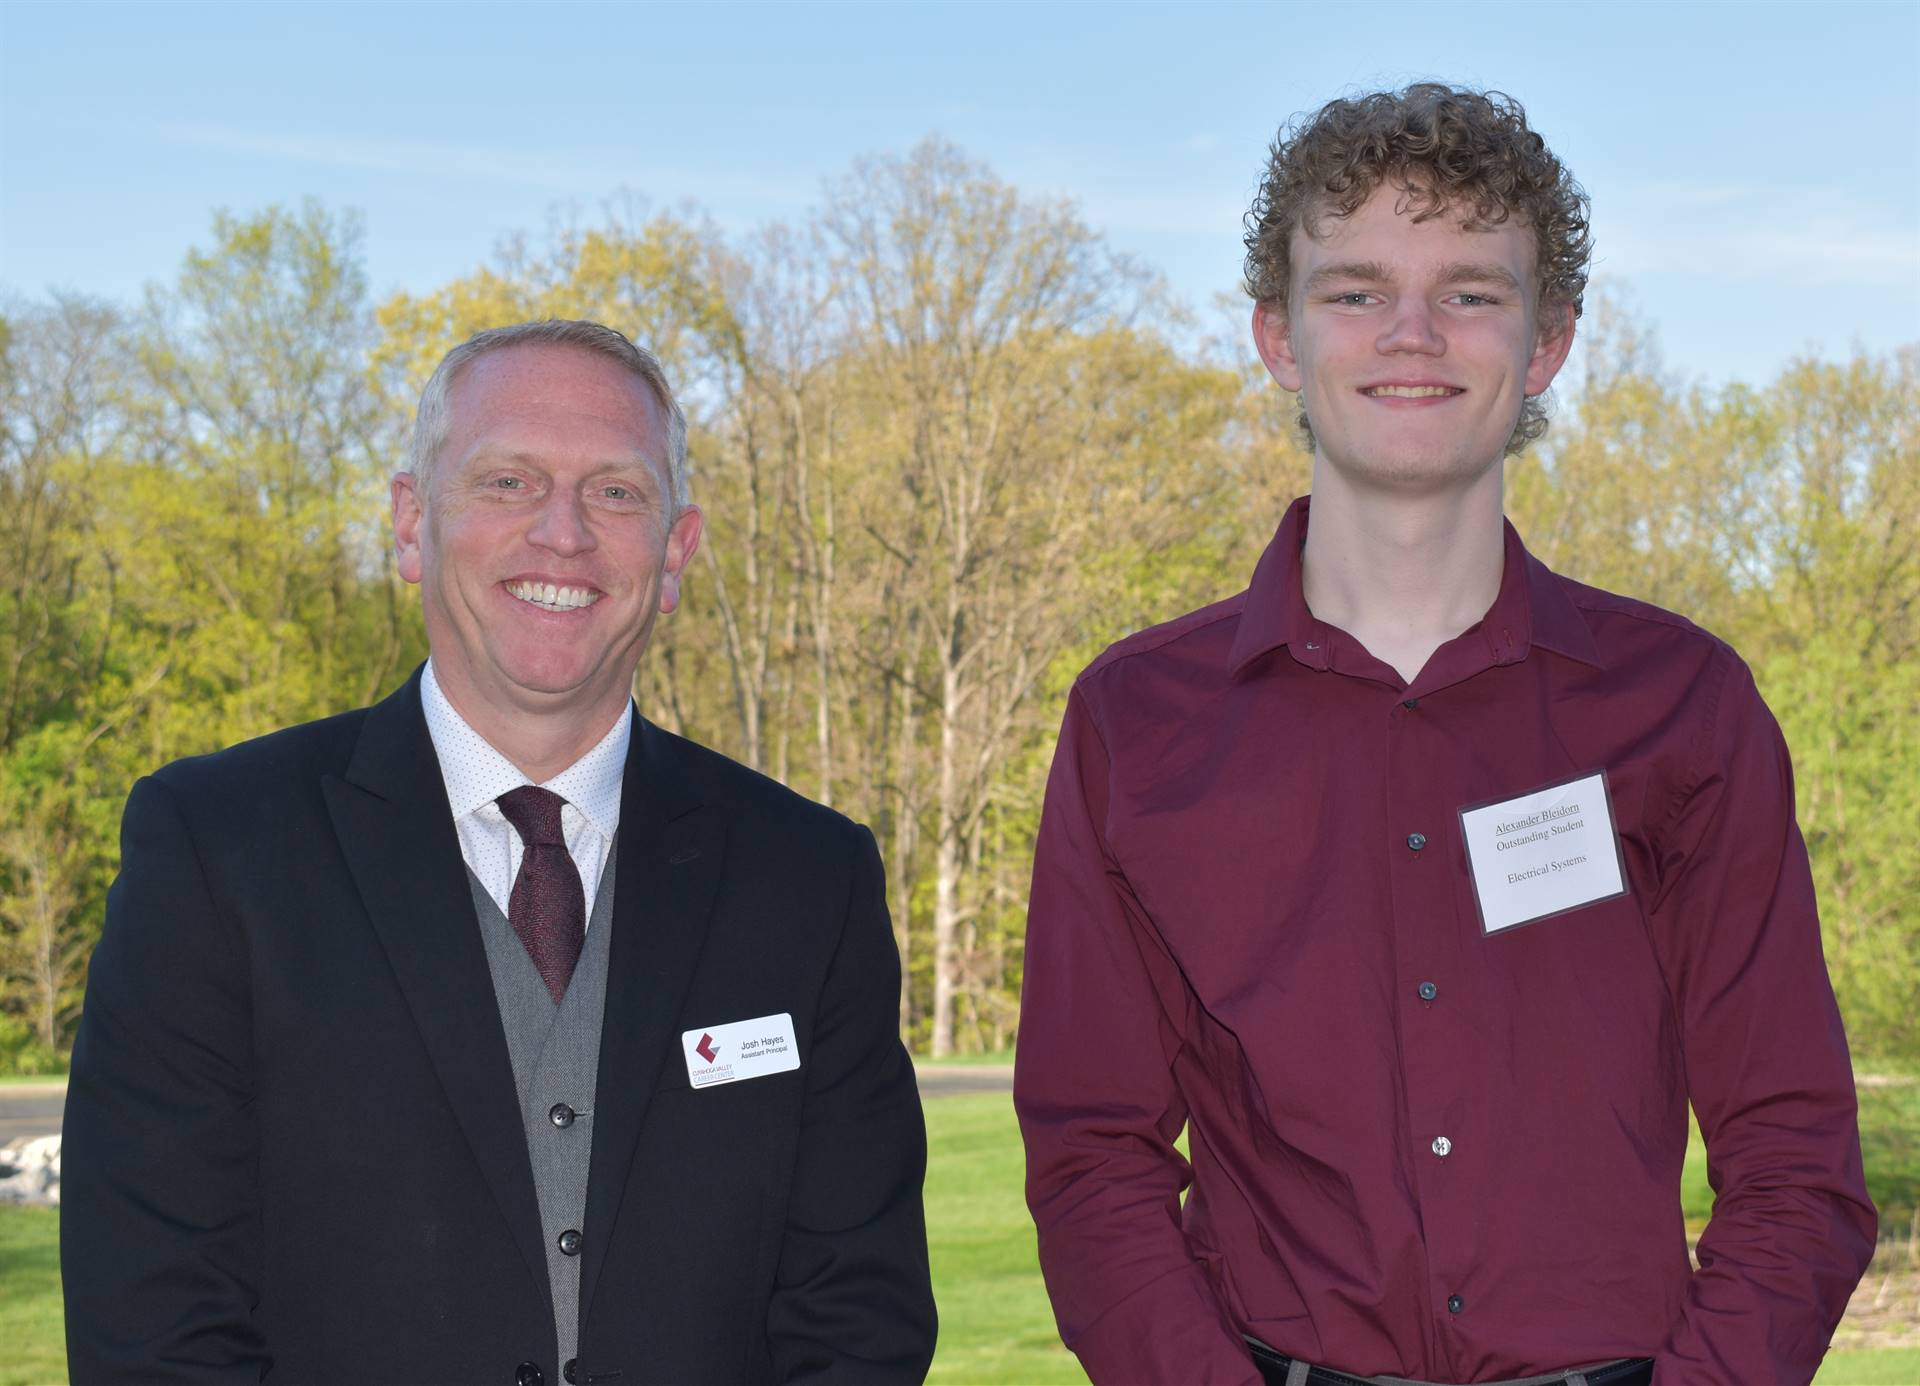 student and assistant principal